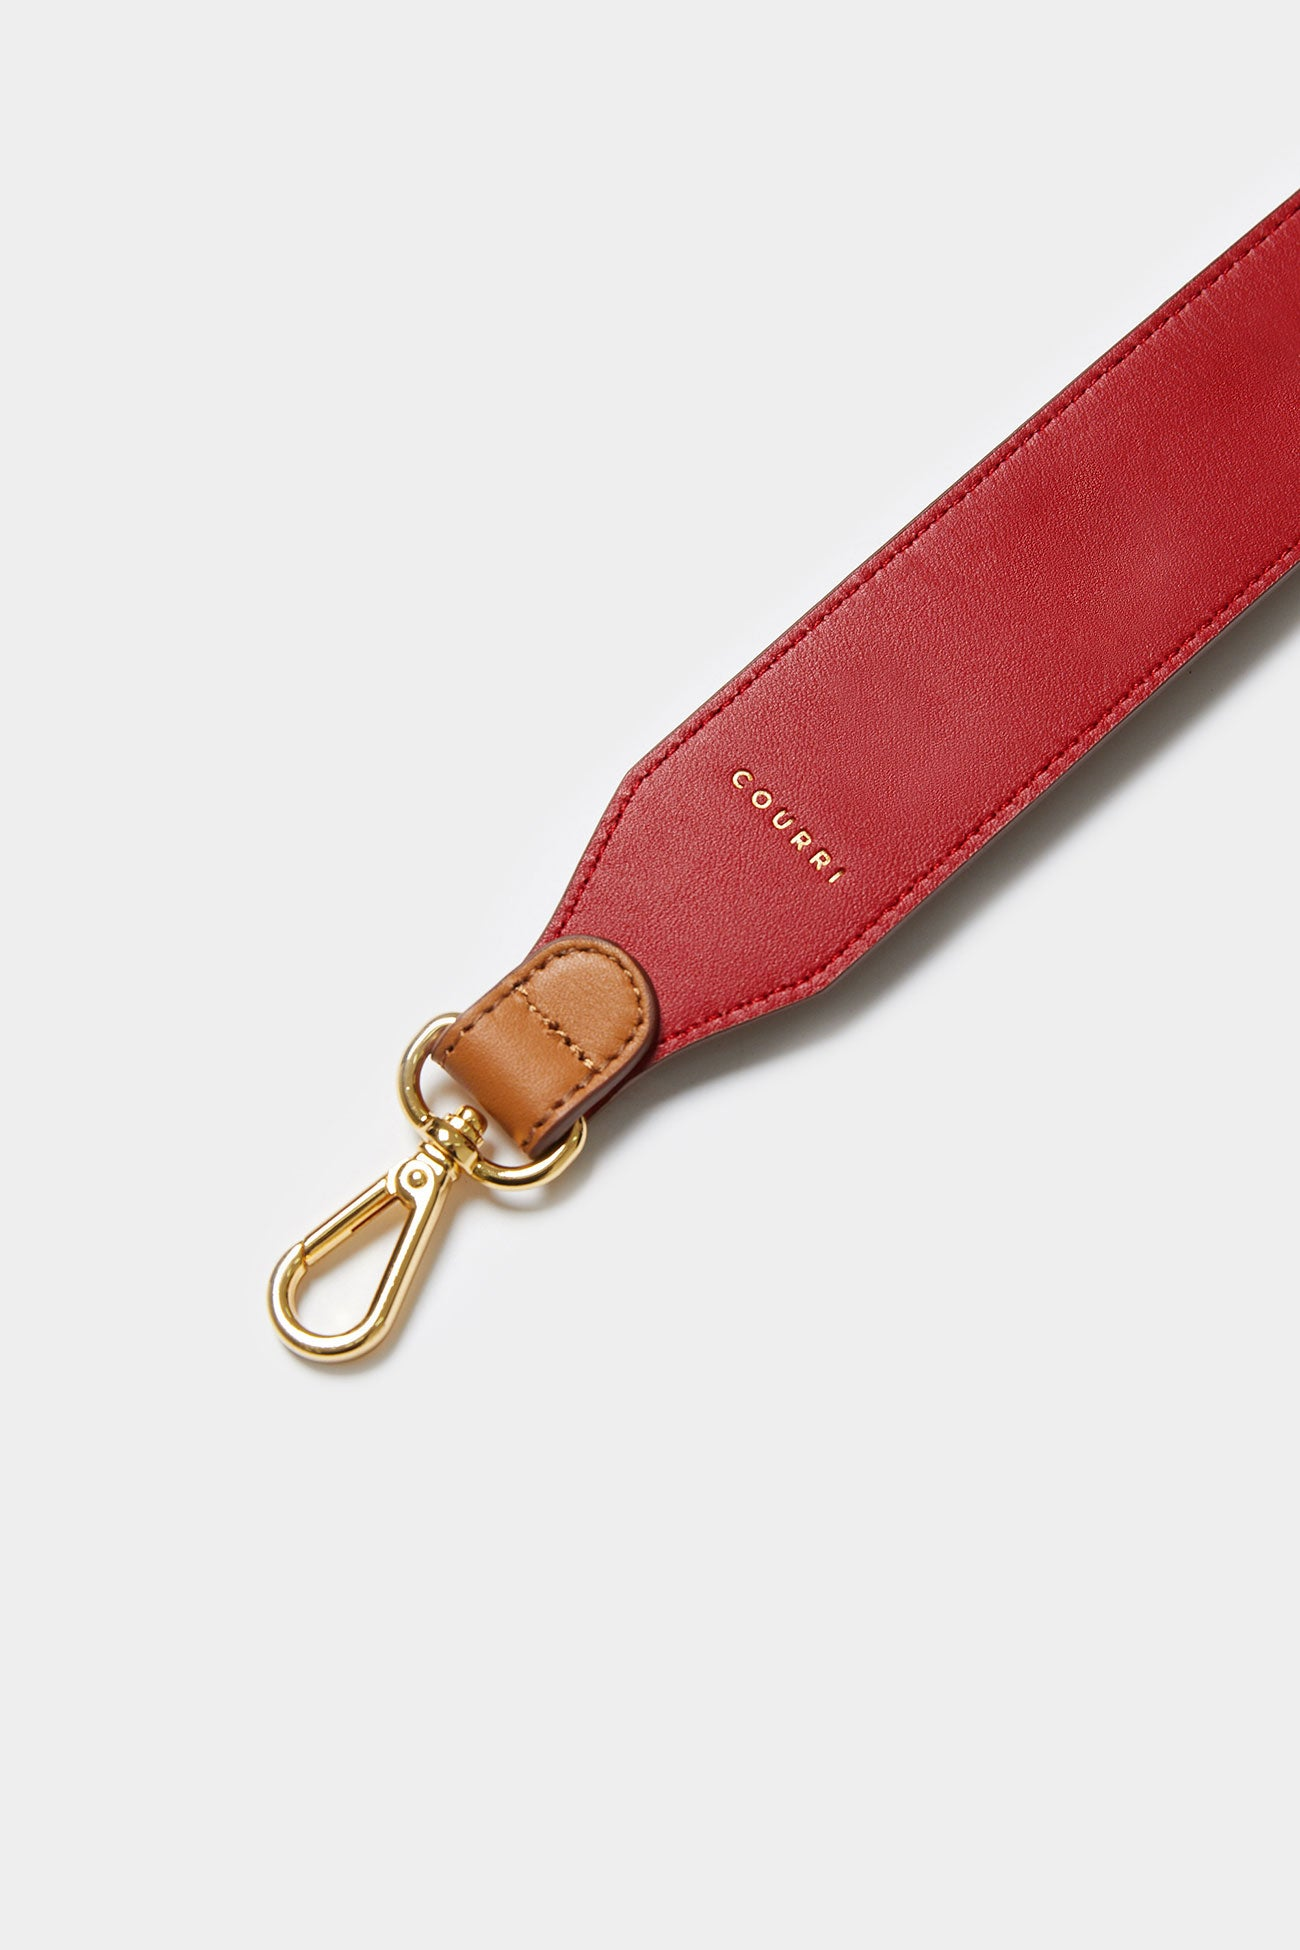 CAMEL CODIE EMBELLISHED LEATHER STRAP [Short]